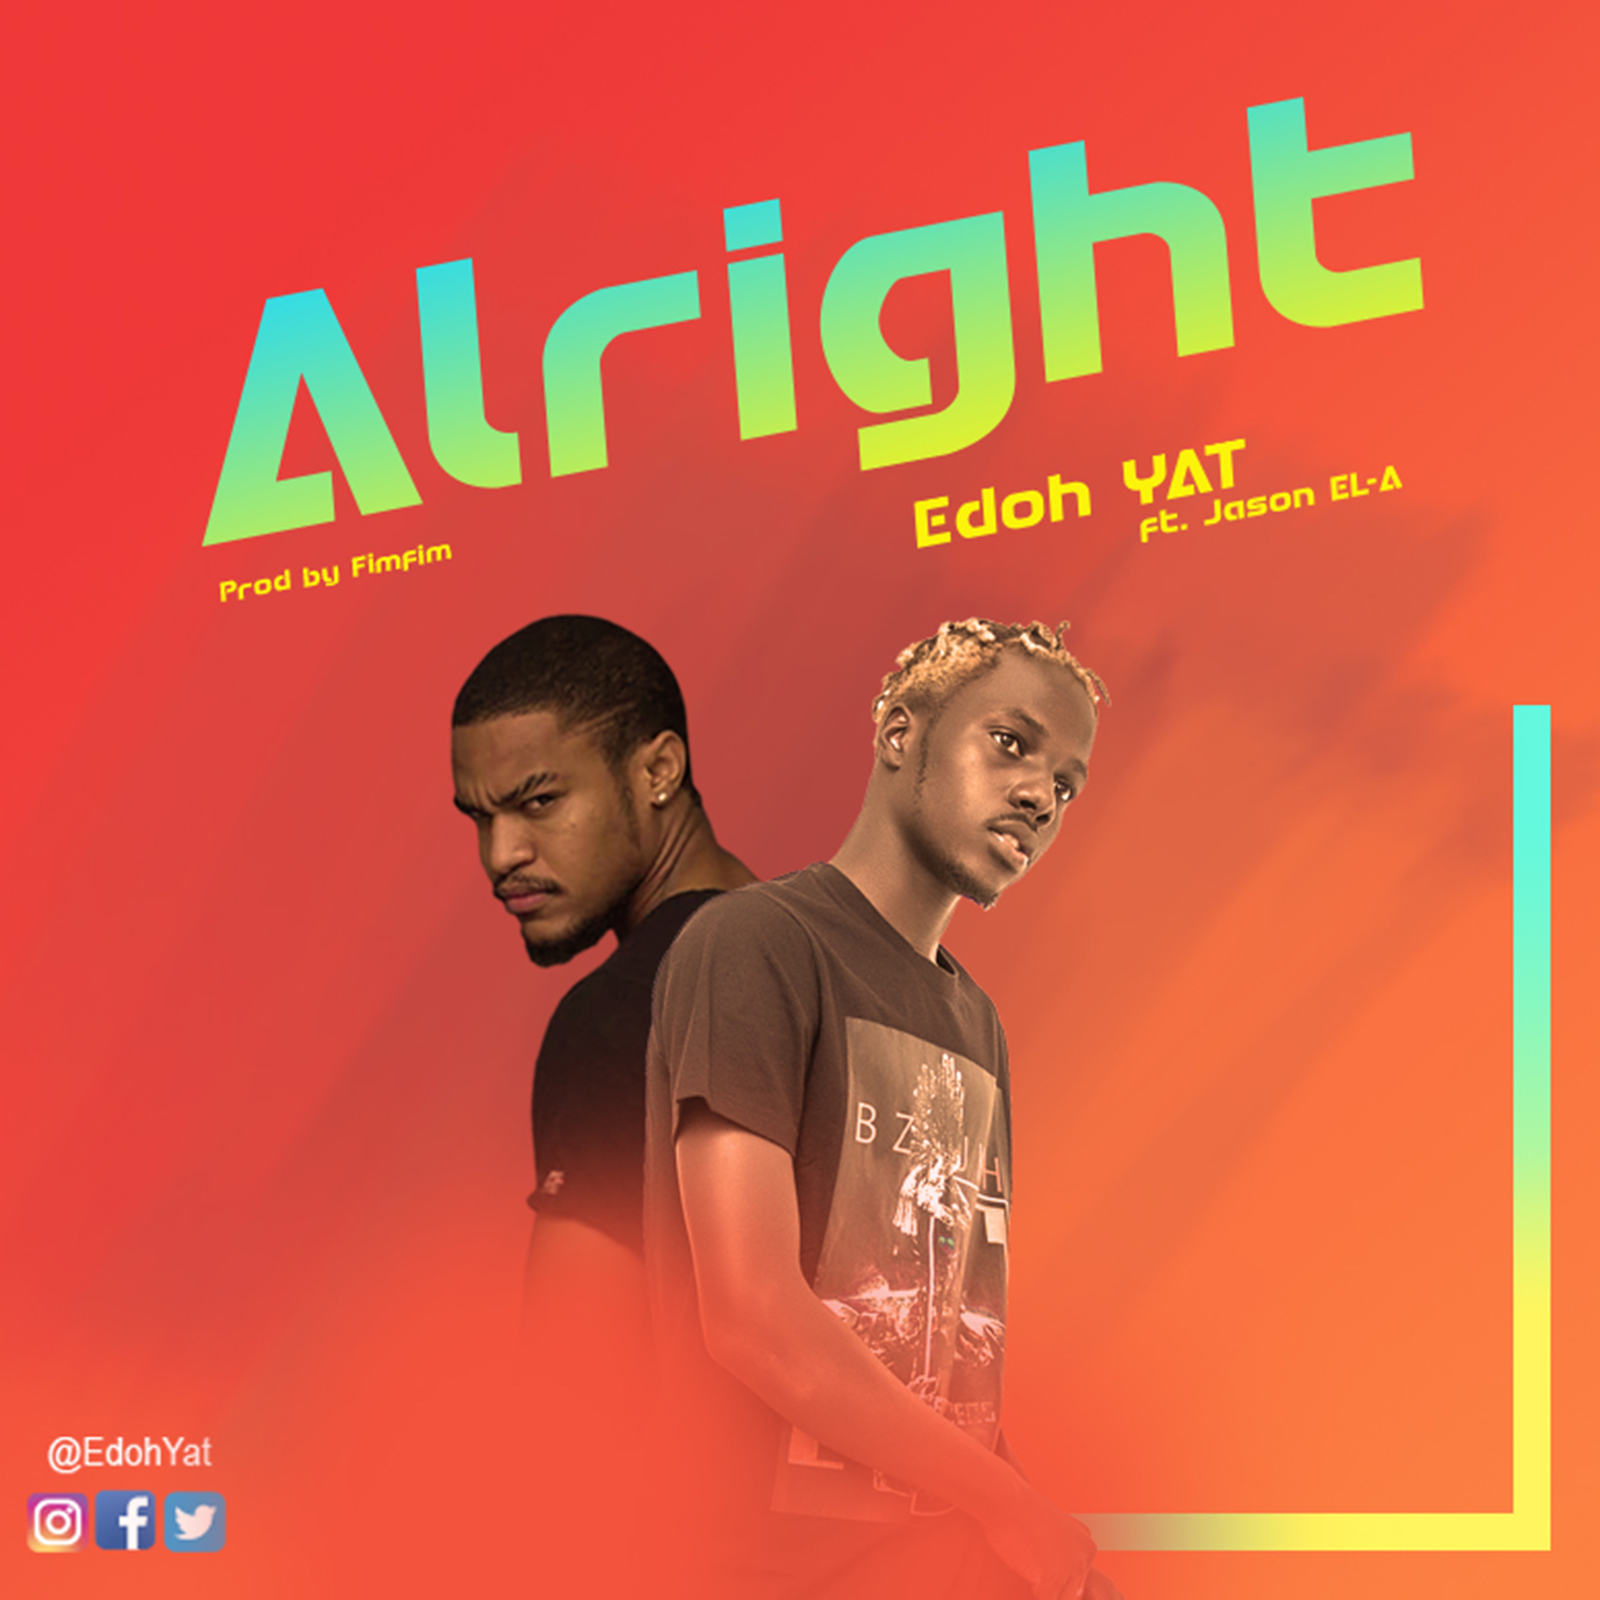 Alright by Edoh YAT feat. Jason EL-A